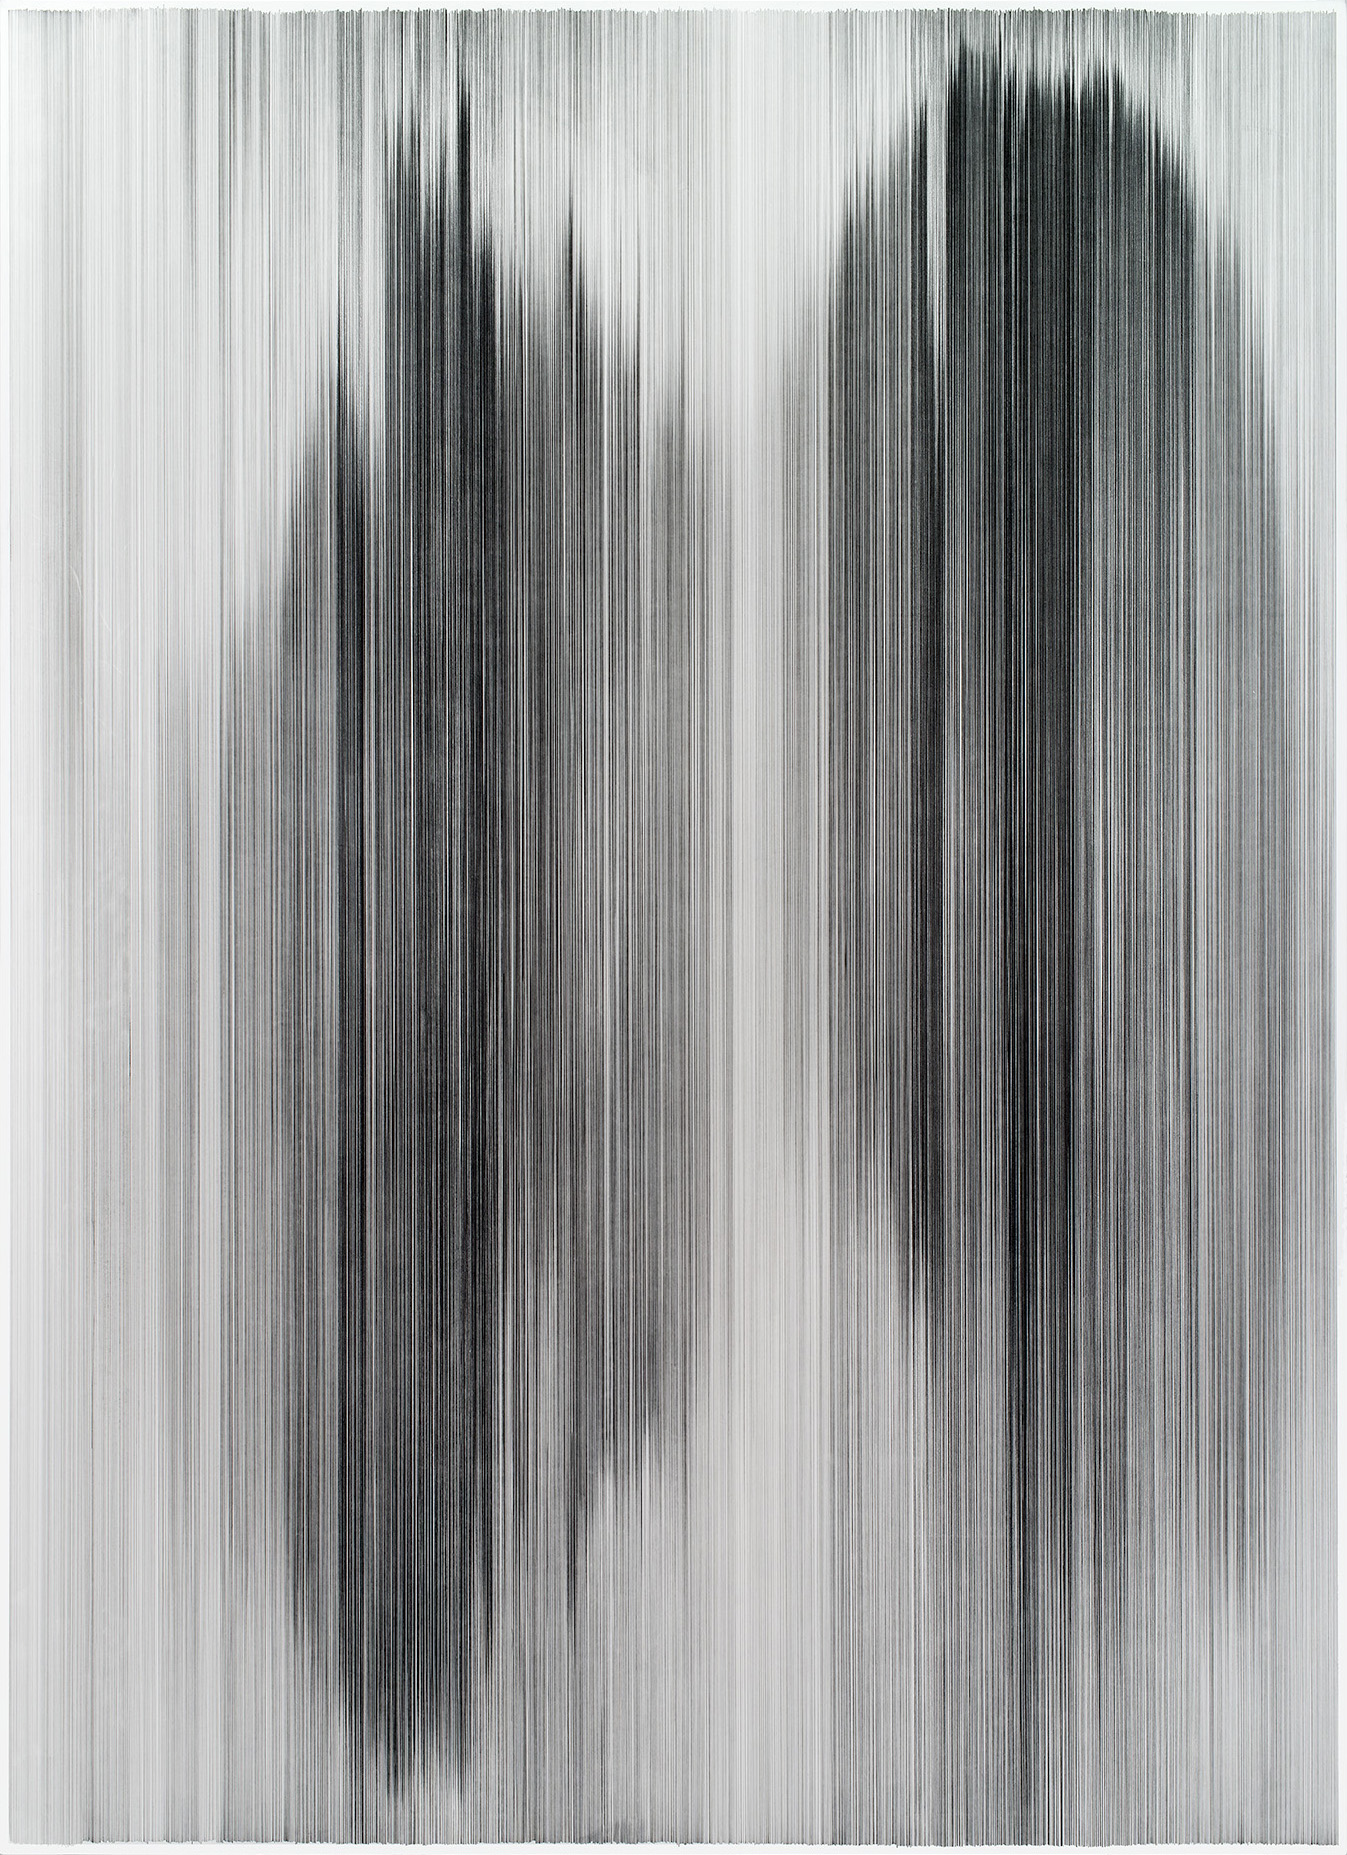 parallel 38  2014 graphite on mat board 80 by 60 inches The Howard and Cindy Rachofsky Collection, Dallas, TX